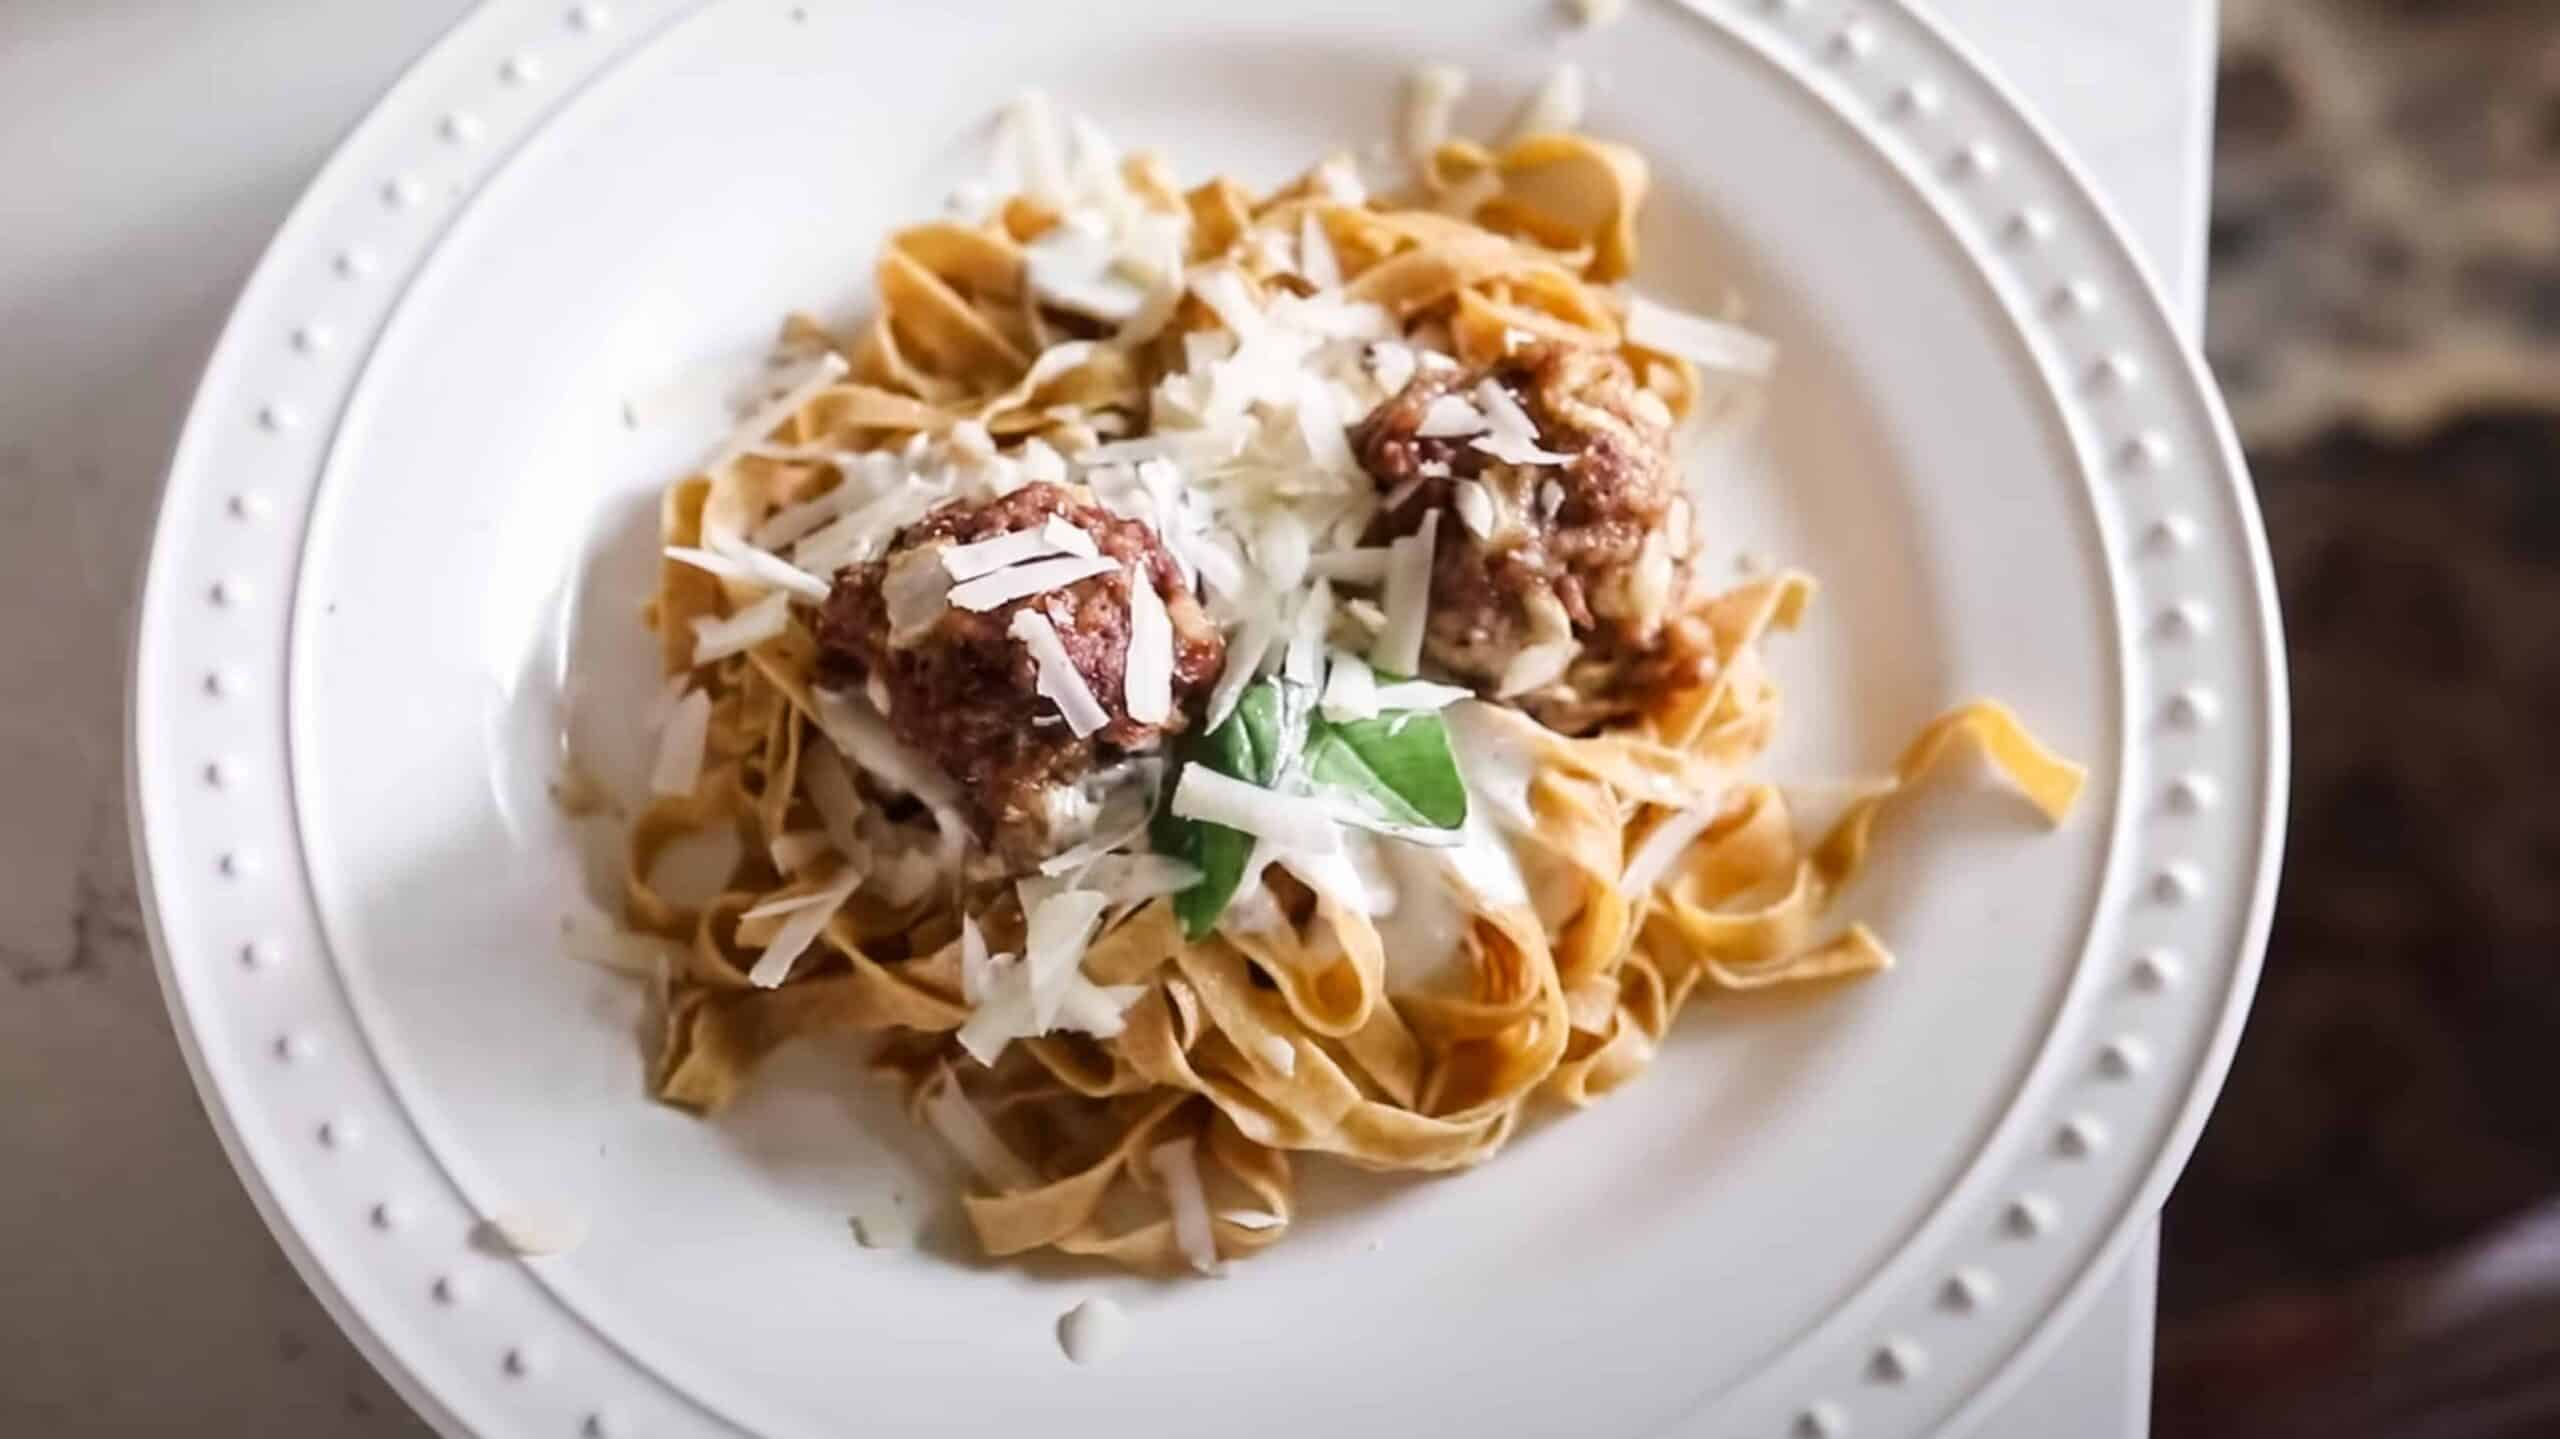 fresh homemade einkorn pasta on a white plate and topped with meatballs fresh herbs and cheese